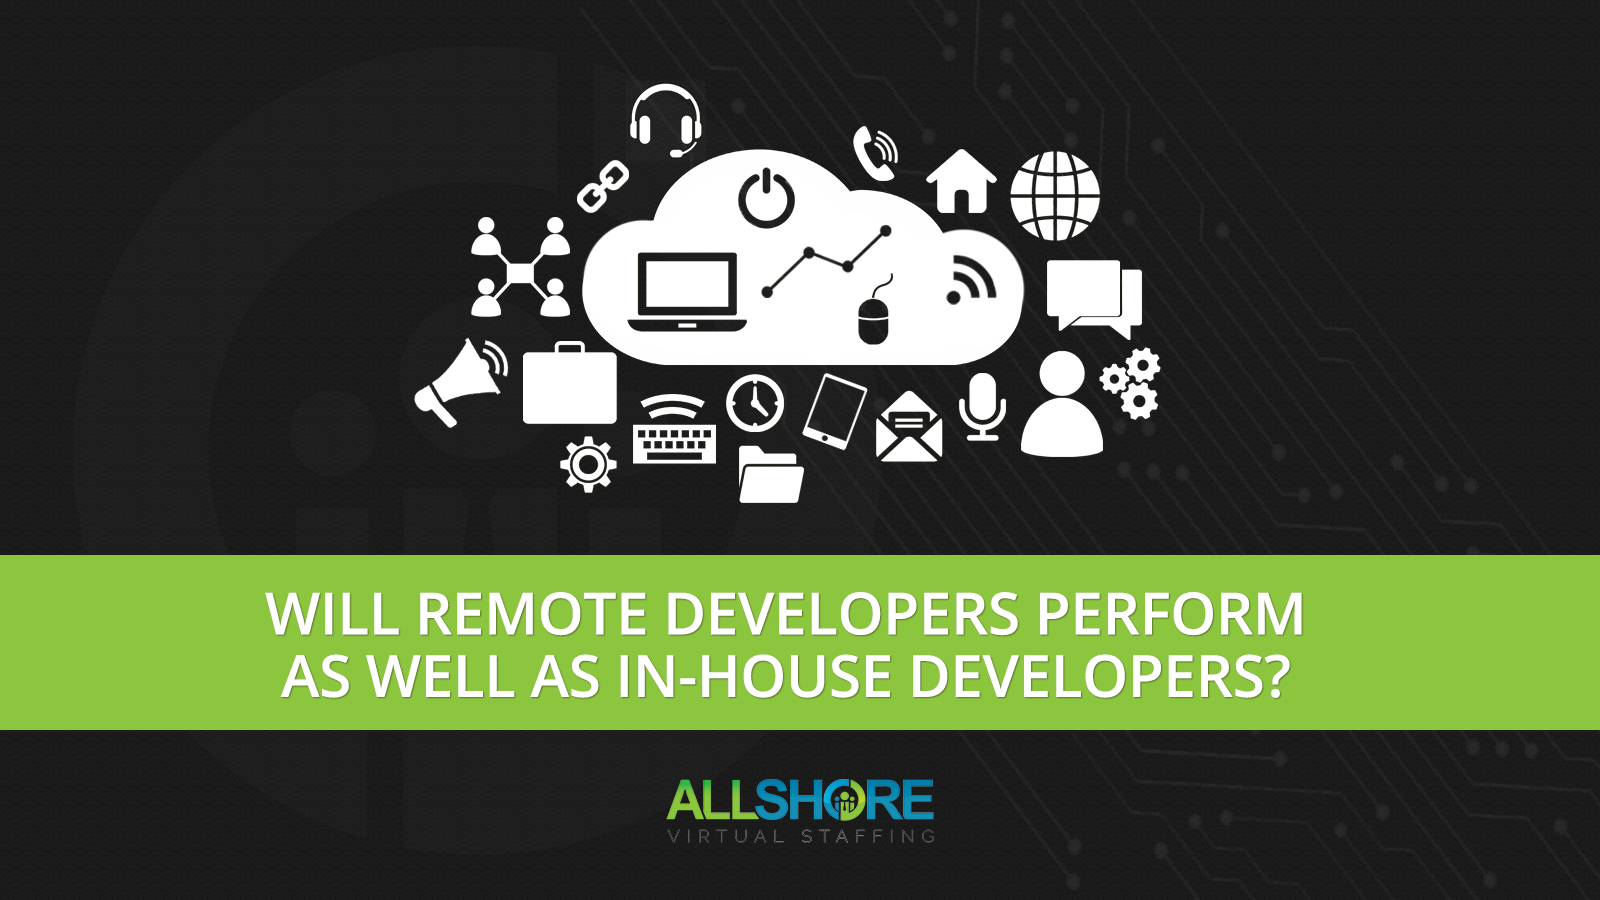 Will Remote Developers Perform as Well as In-House Developers?